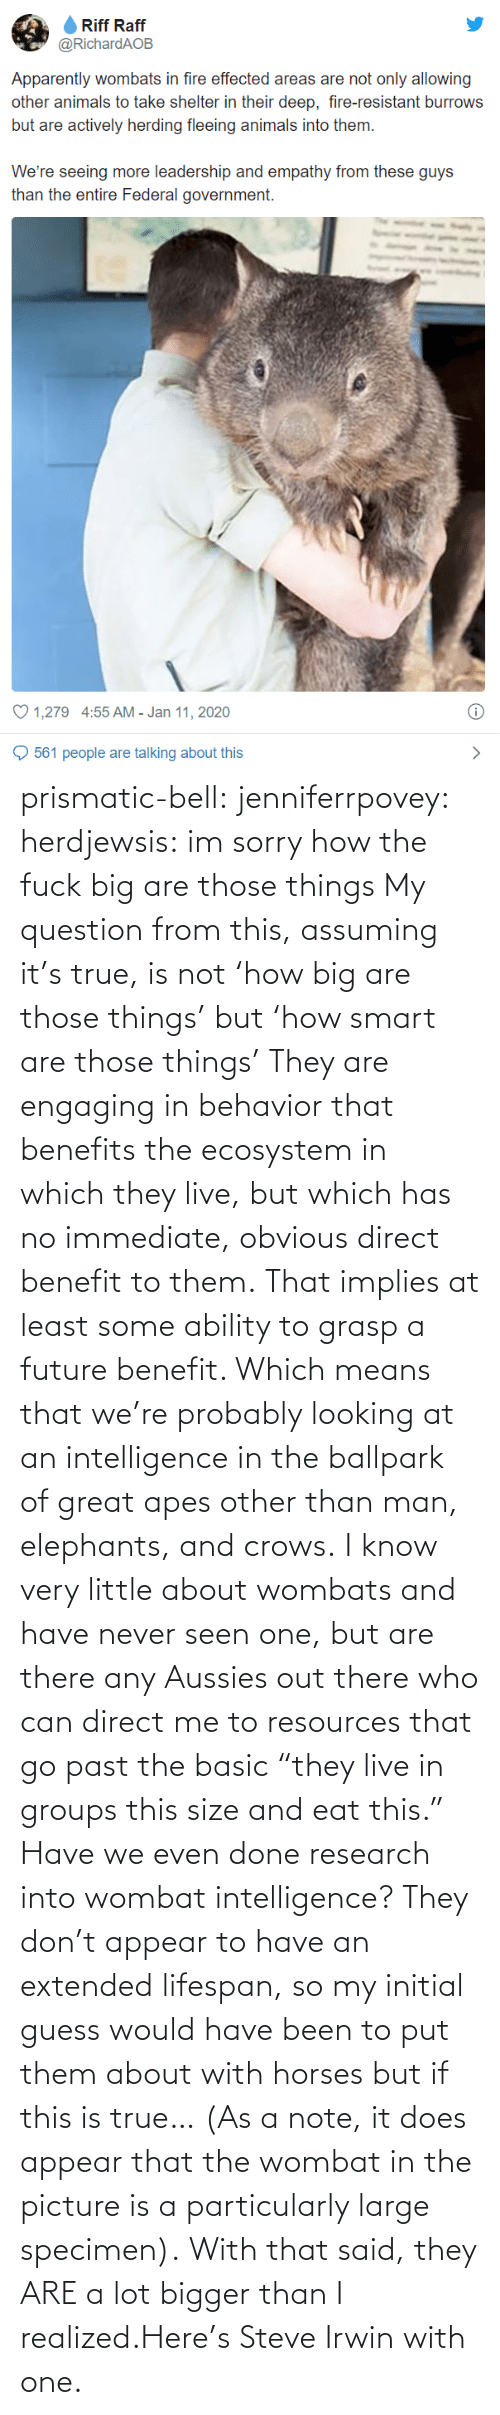 "Ability: prismatic-bell:  jenniferrpovey: herdjewsis: im sorry how the fuck big are those things My question from this, assuming it's true, is not 'how big are those things' but 'how smart are those things' They are engaging in behavior that benefits the ecosystem in which they live, but which has no immediate, obvious direct benefit to them. That implies at least some ability to grasp a future benefit. Which means that we're probably looking at an intelligence in the ballpark of great apes other than man, elephants, and crows. I know very little about wombats and have never seen one, but are there any Aussies out there who can direct me to resources that go past the basic ""they live in groups this size and eat this."" Have we even done research into wombat intelligence? They don't appear to have an extended lifespan, so my initial guess would have been to put them about with horses but if this is true… (As a note, it does appear that the wombat in the picture is a particularly large specimen).  With that said, they ARE a lot bigger than I realized.Here's Steve Irwin with one."